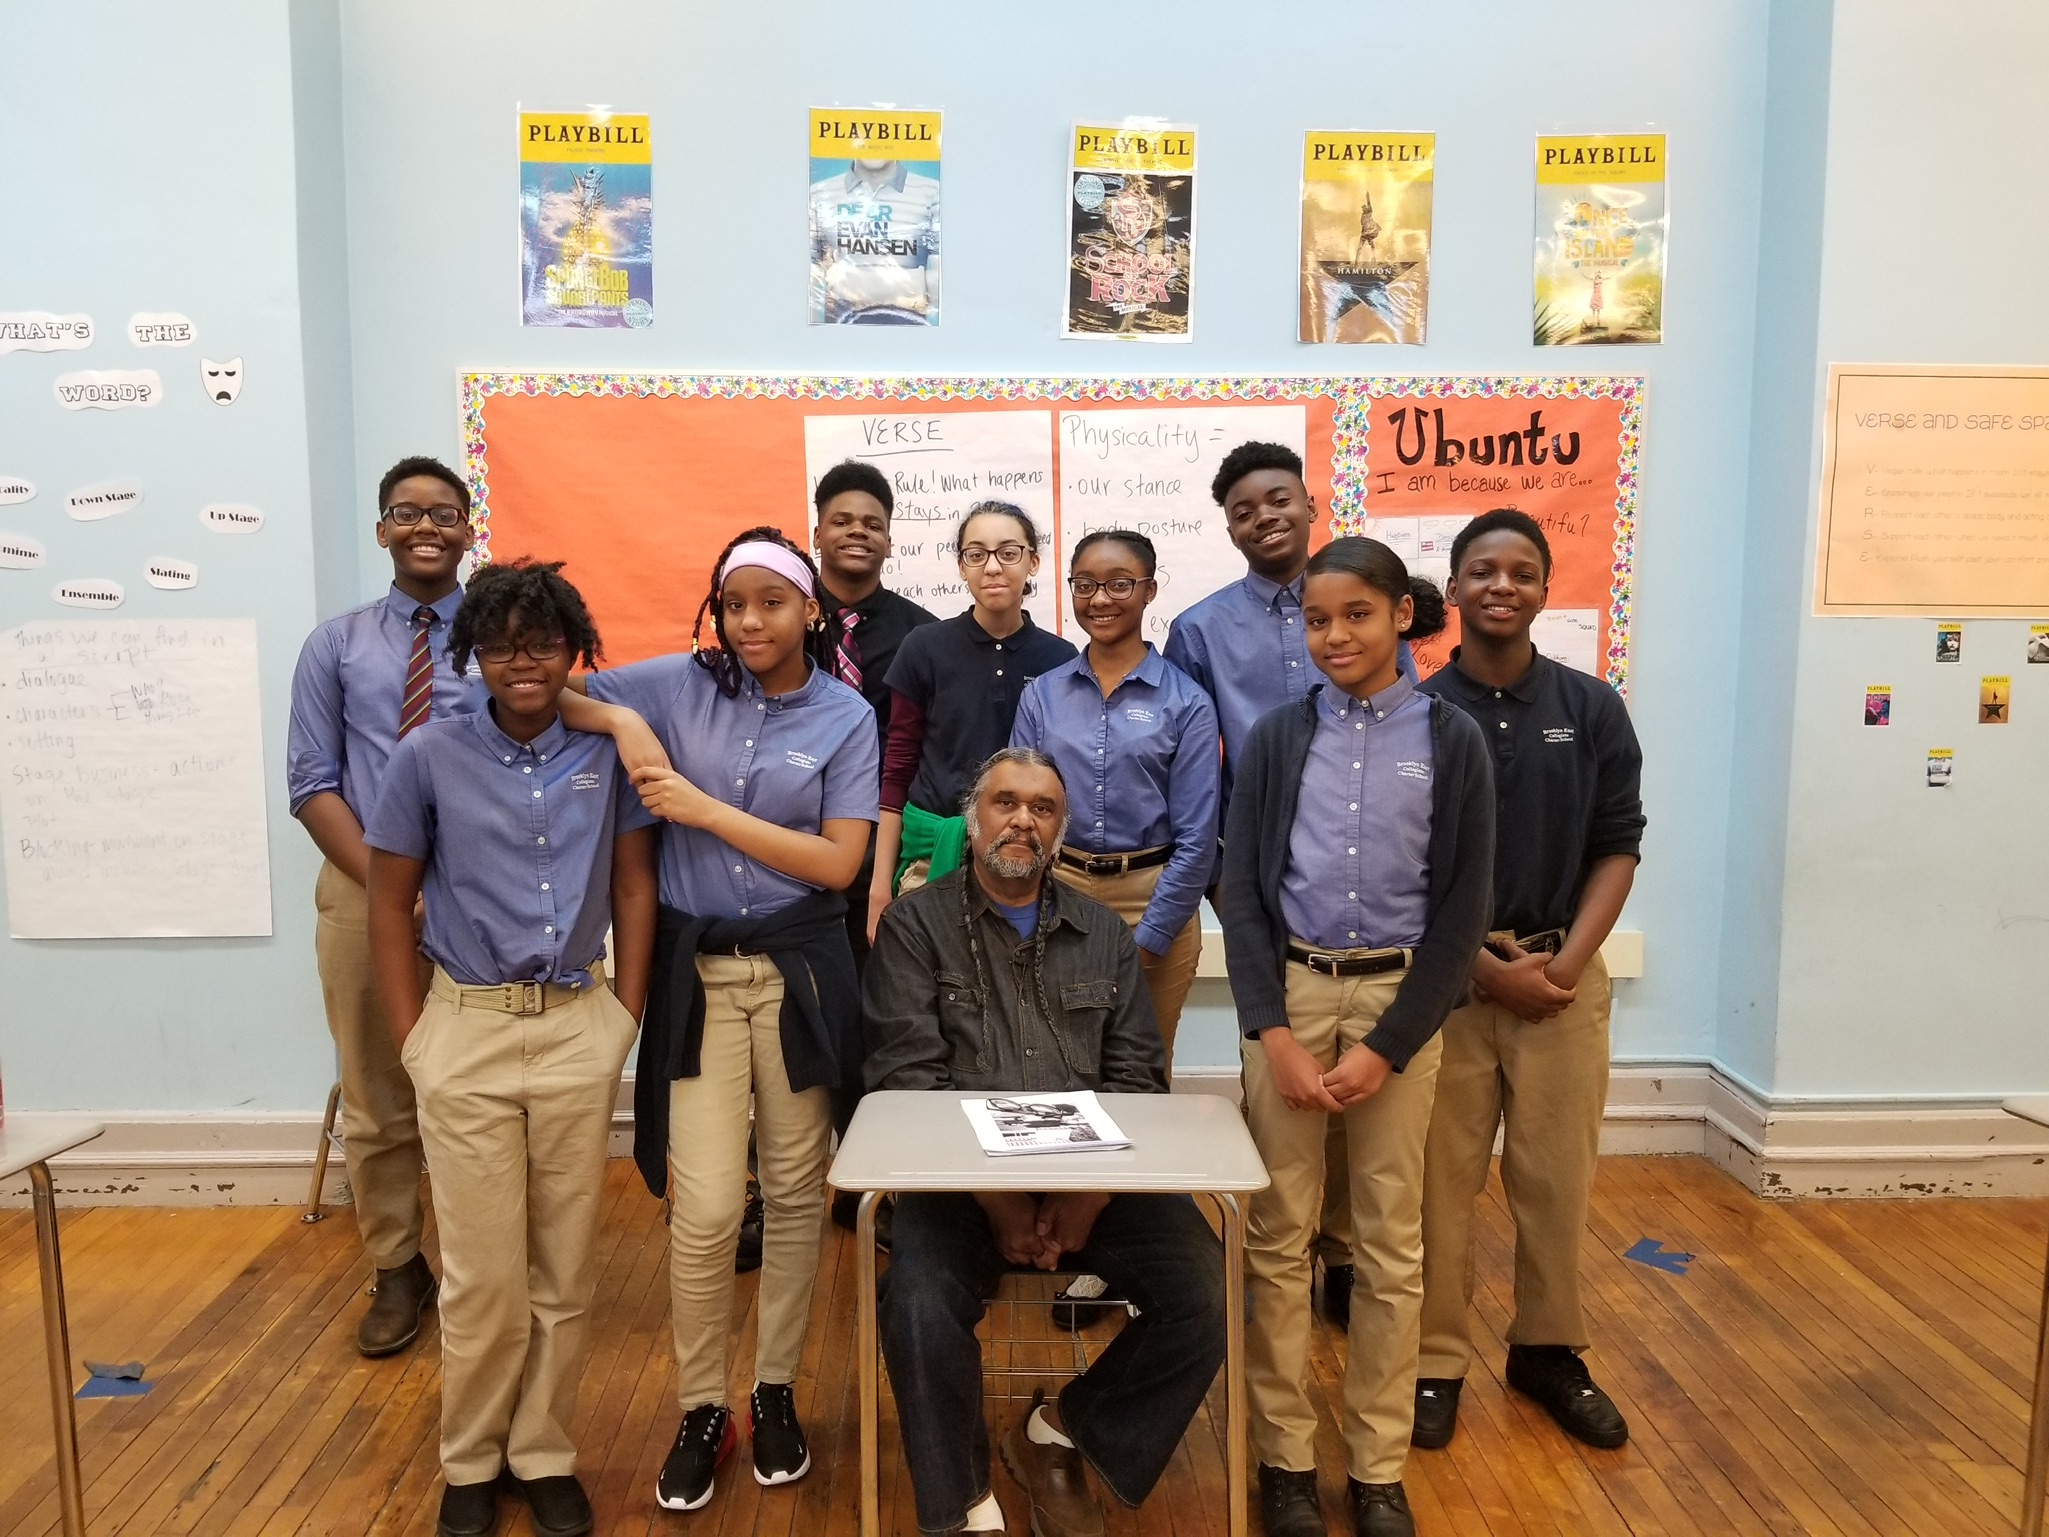 Claude Oliver, son of Rev. C. Herbert Oliver, visits students at Brooklyn East Collegiate to discuss growing up with a civil rights leader.